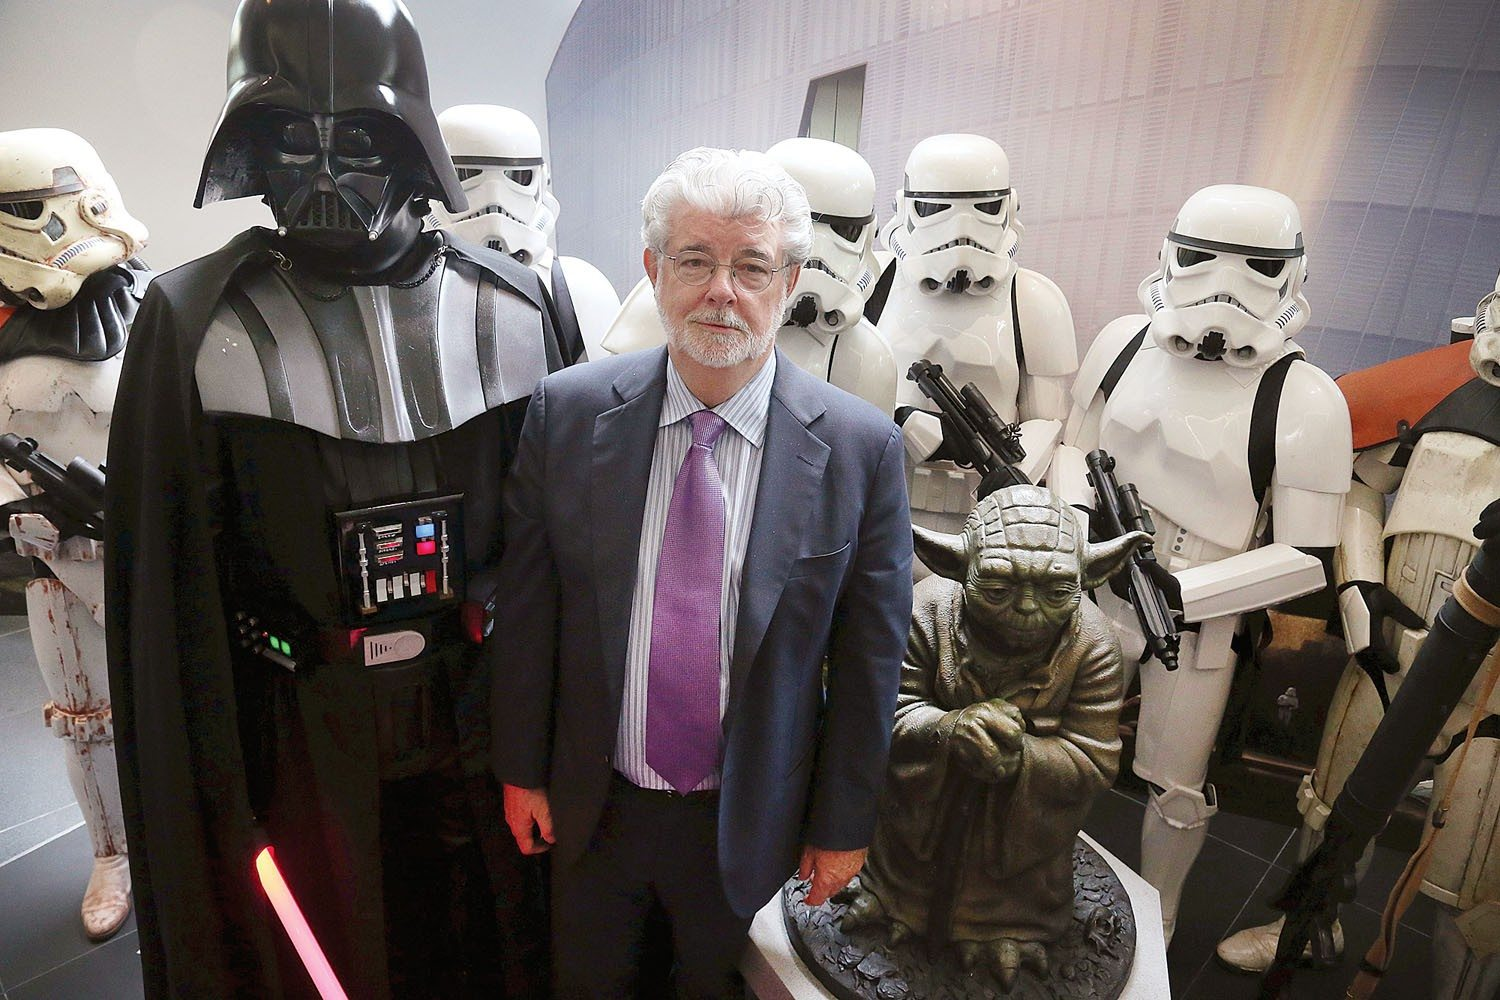 George Lucas will no longer build his Lucas Museum of Narrative Art with a collection of fine art and Hollywood memorabilia in Chicago after facing legal issues. (S.F. Examiner file photo)